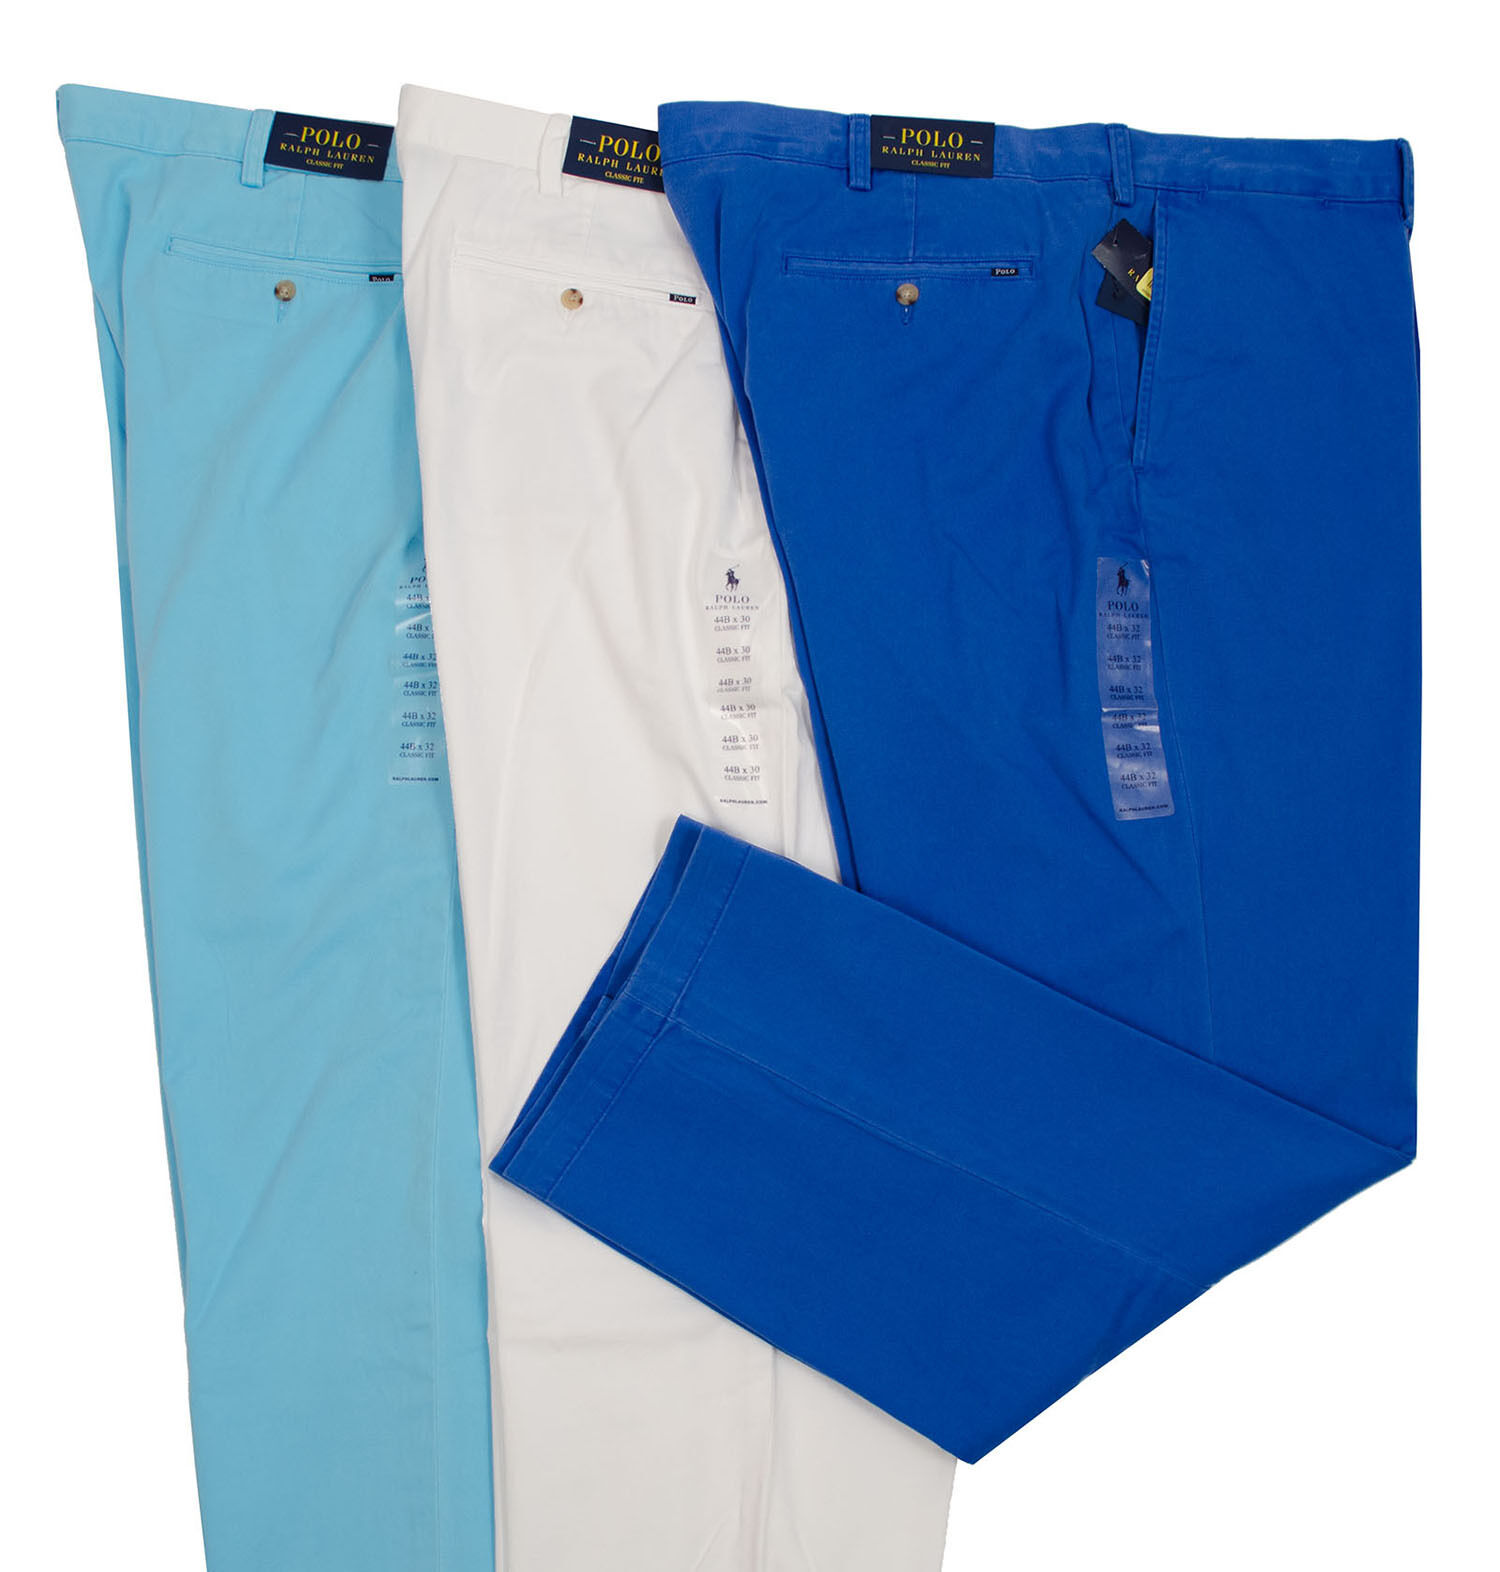 POLO RALPH LAUREN BIG TALL MEN CLASSIC FIT FLAT FRONT PANTS TURQUOISE WHITE blueE